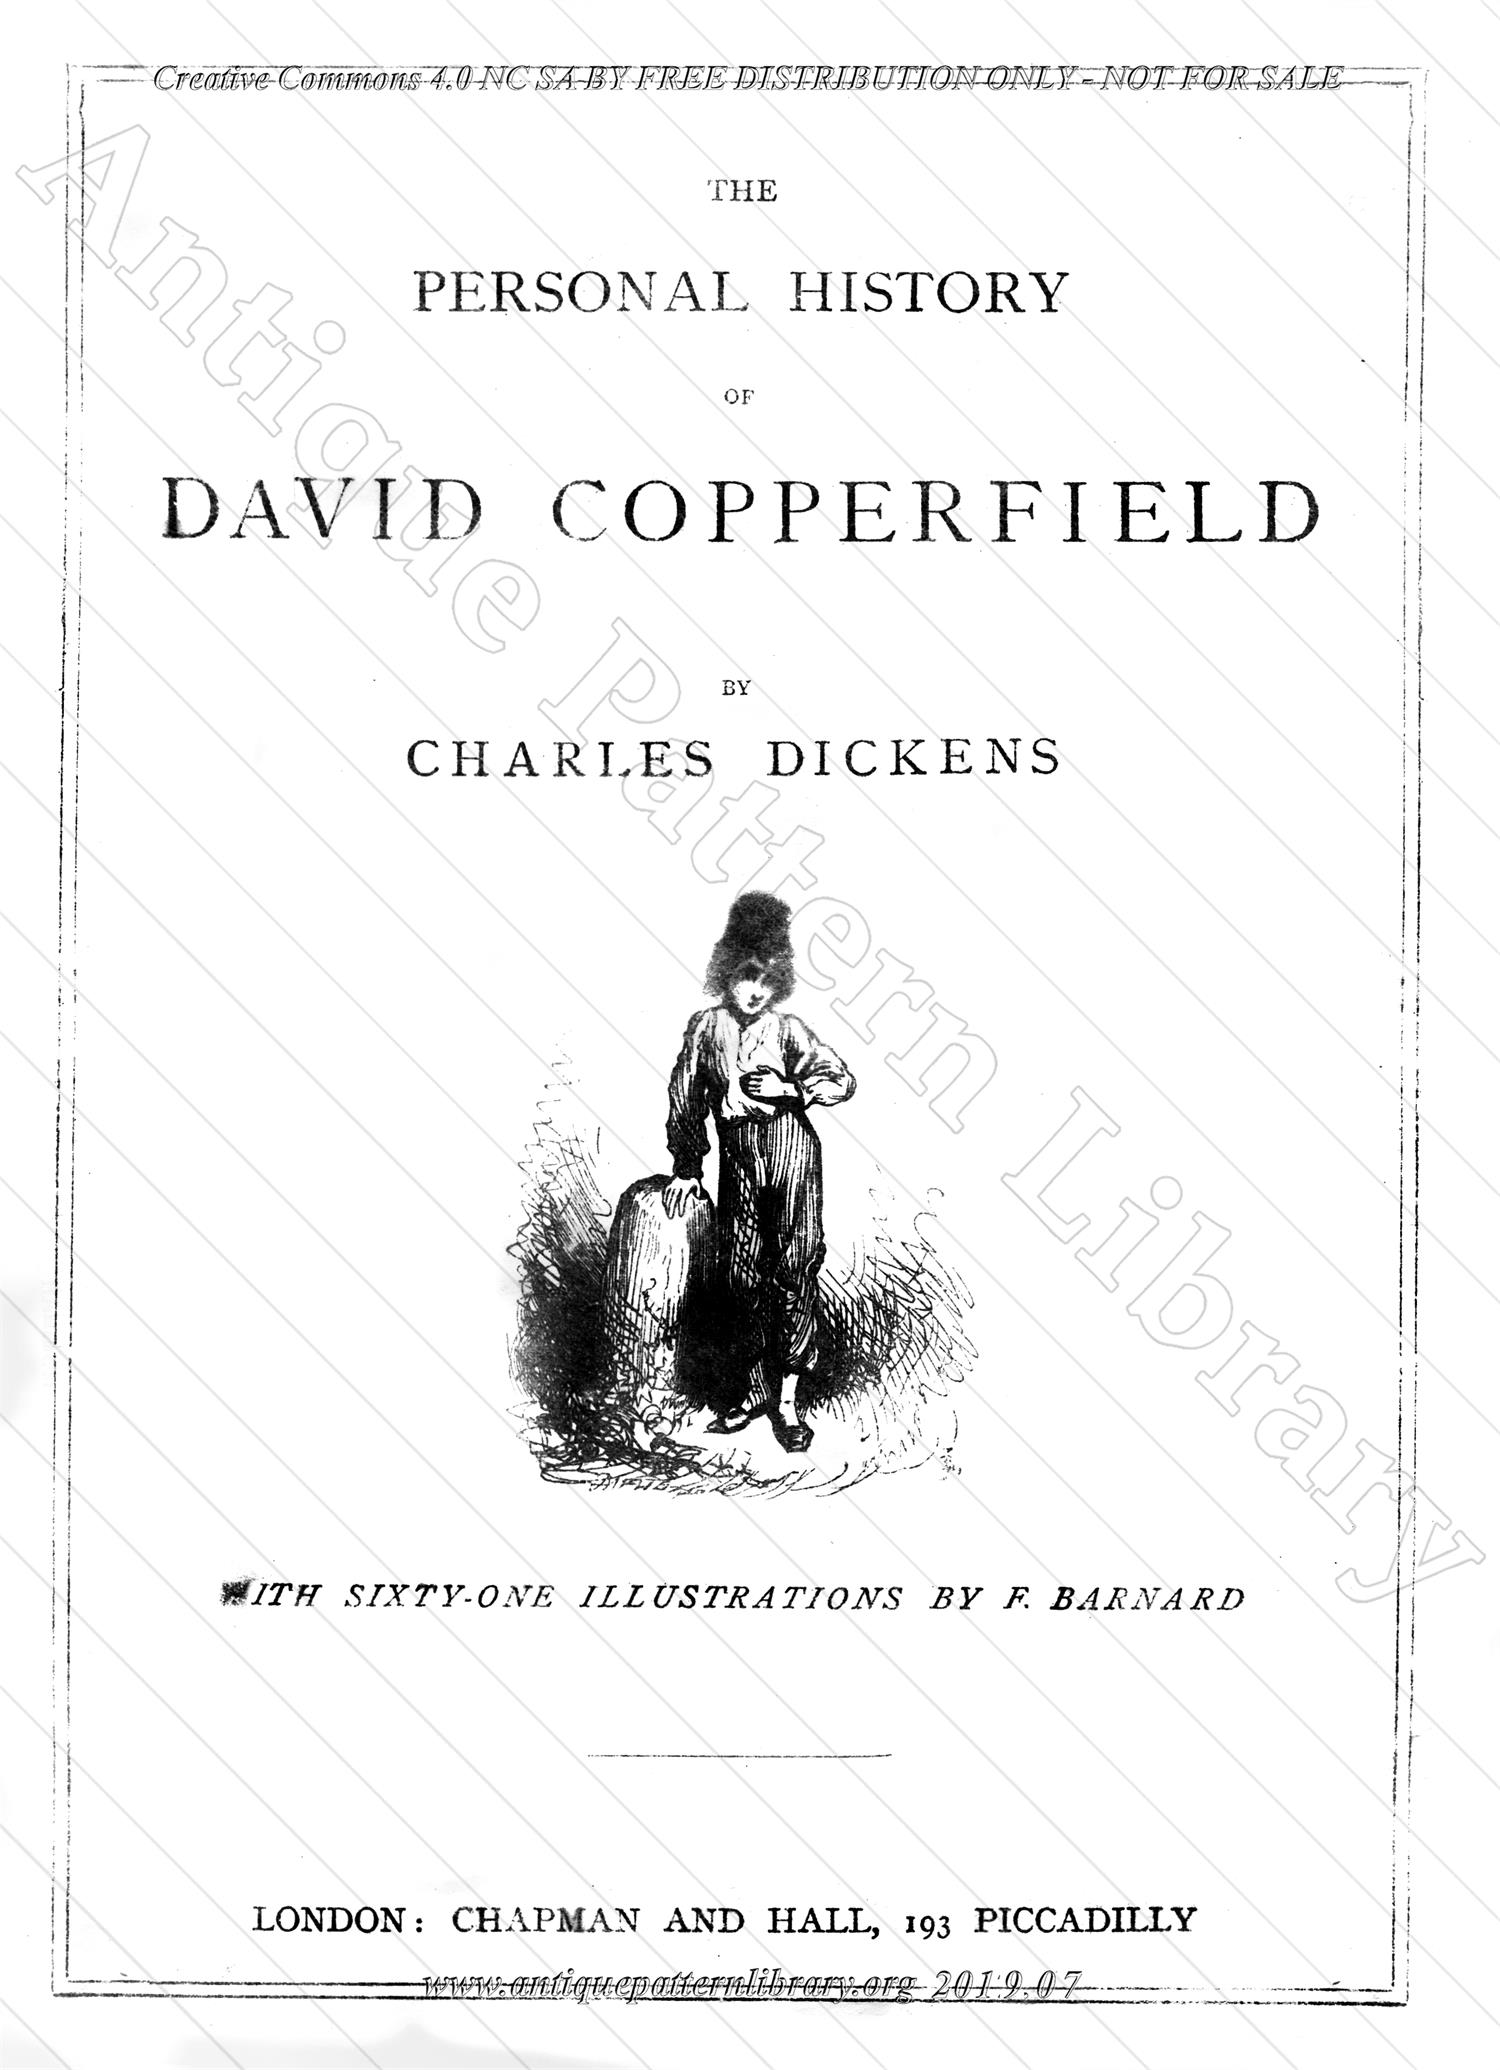 J-FW010 The Personal History of David Copperfield